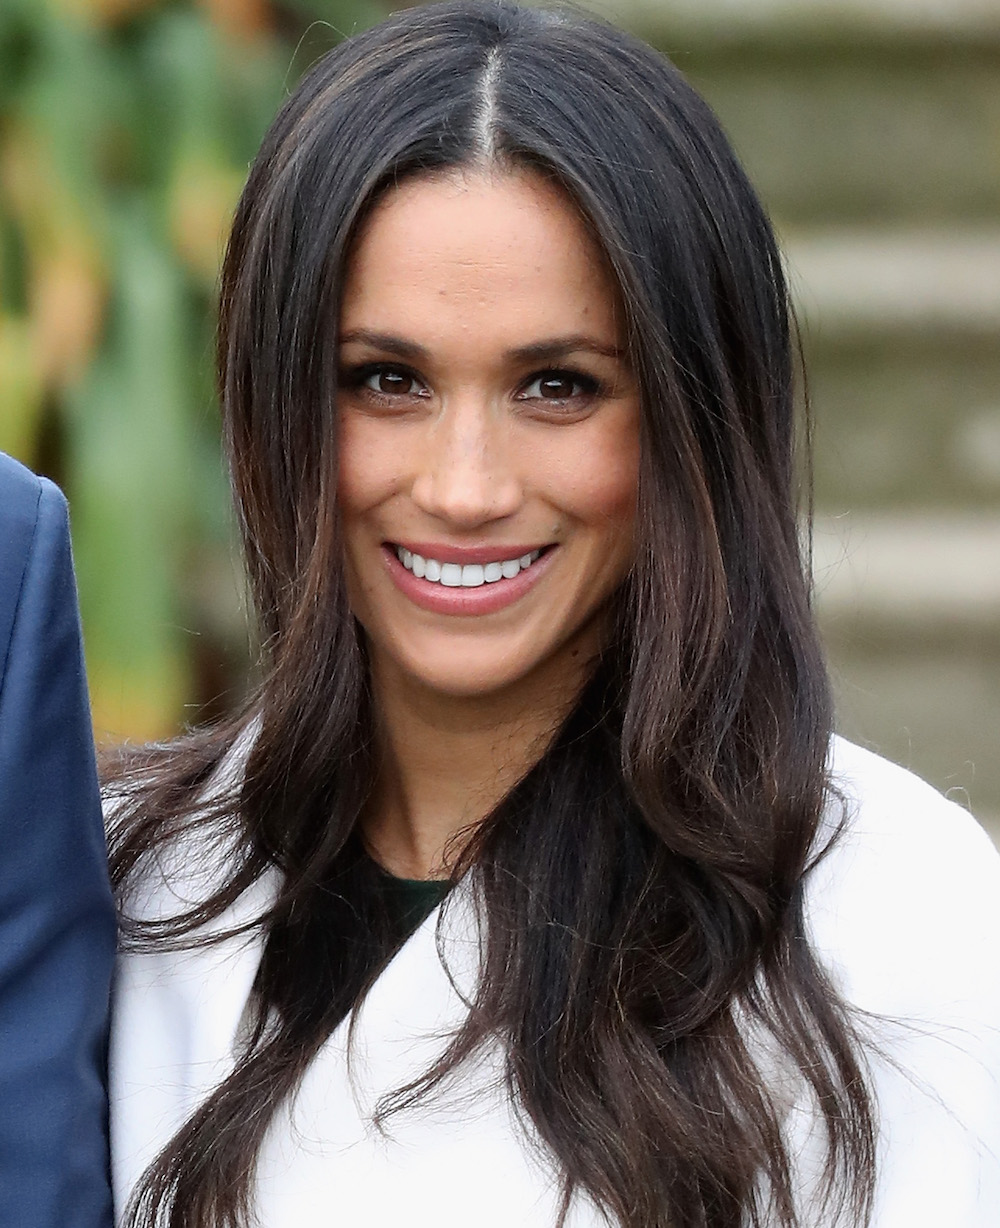 One of Meghan Markle's beauty tips includes this odd facial exercise